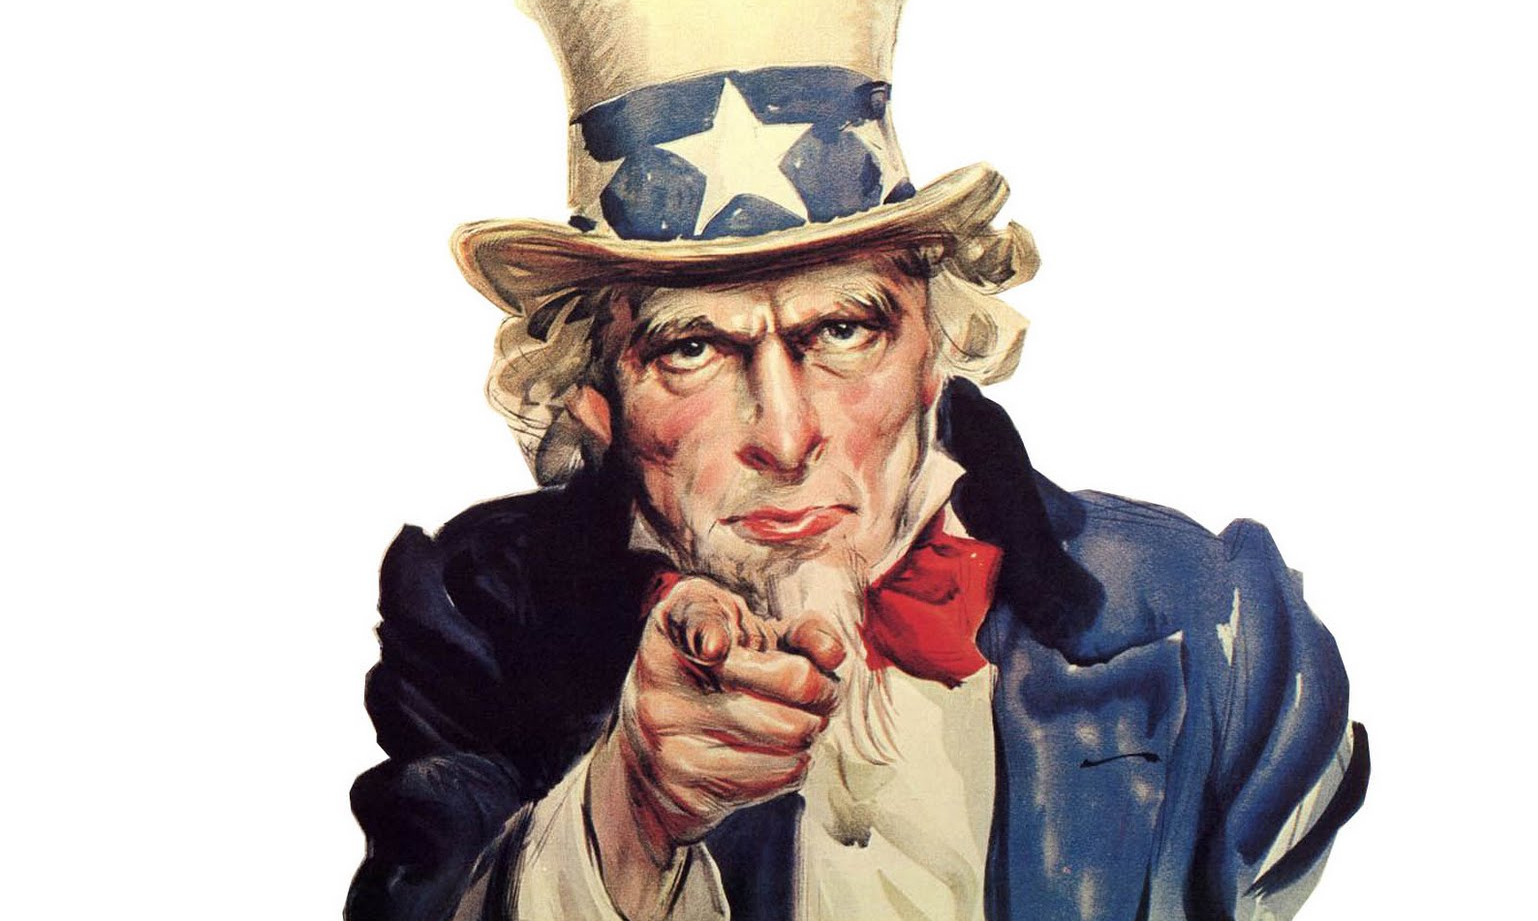 We want you to make it free